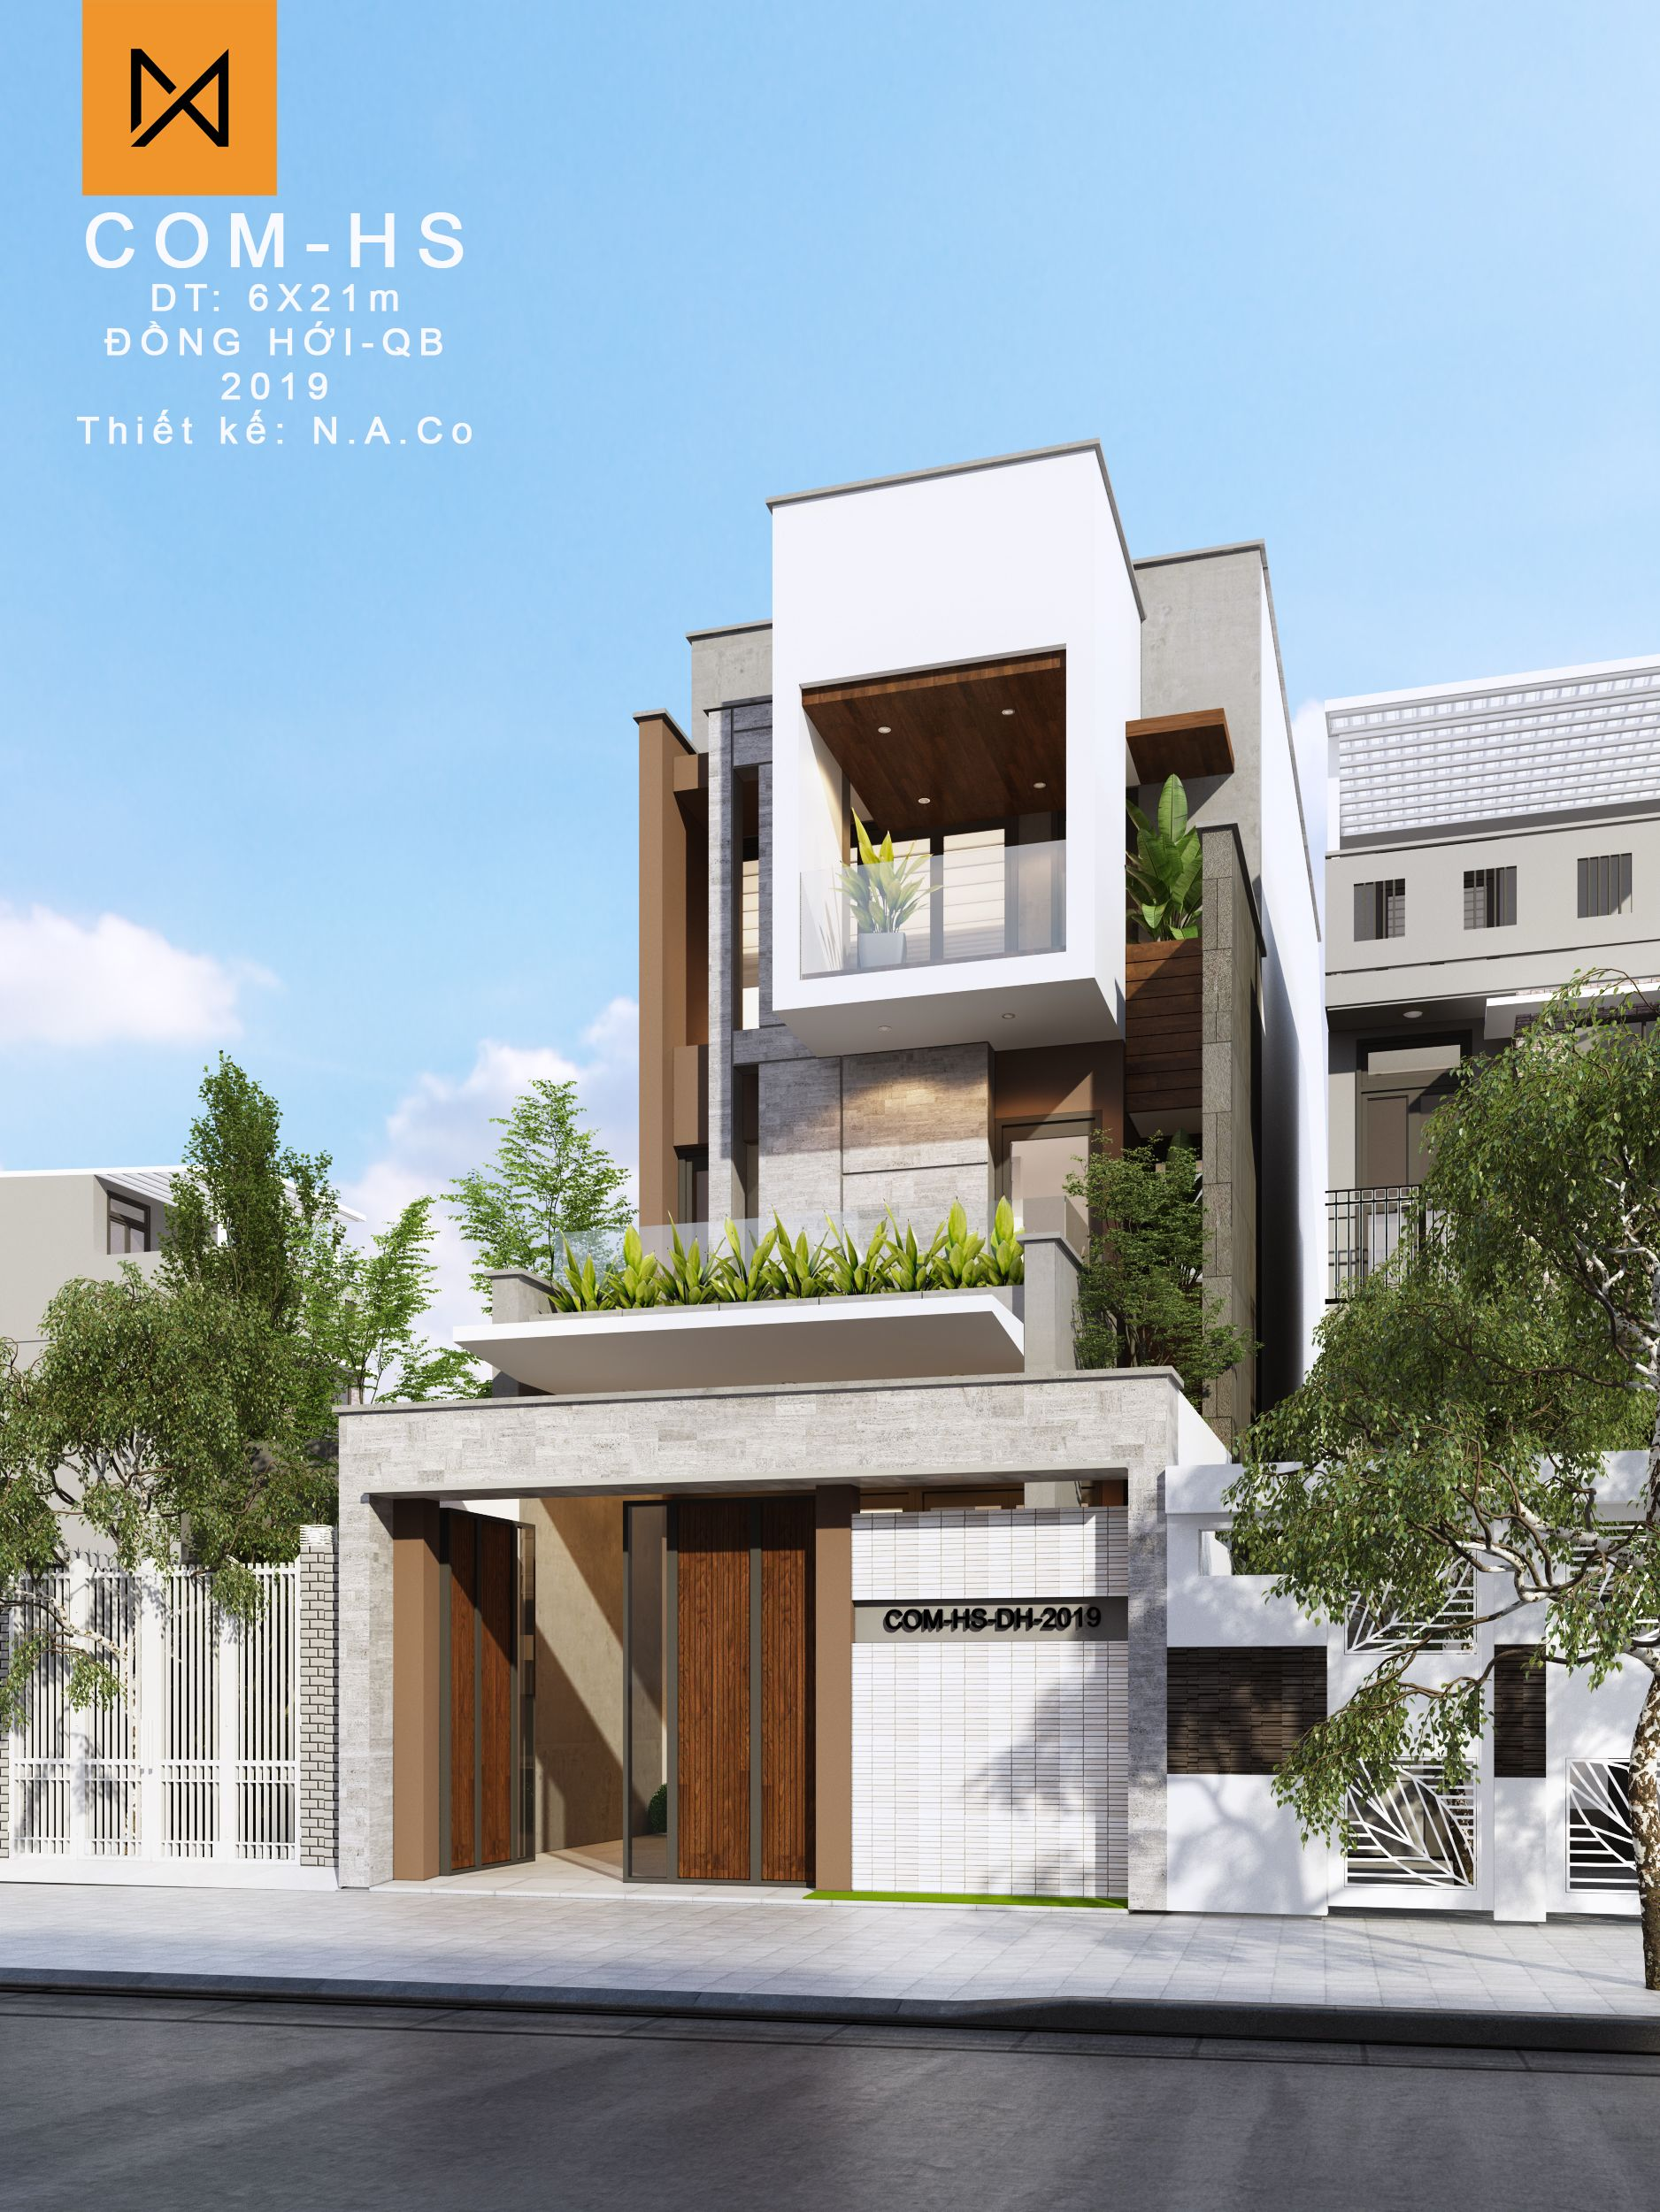 More information also the central core  house flyyingseeds design studios offices rh pinterest